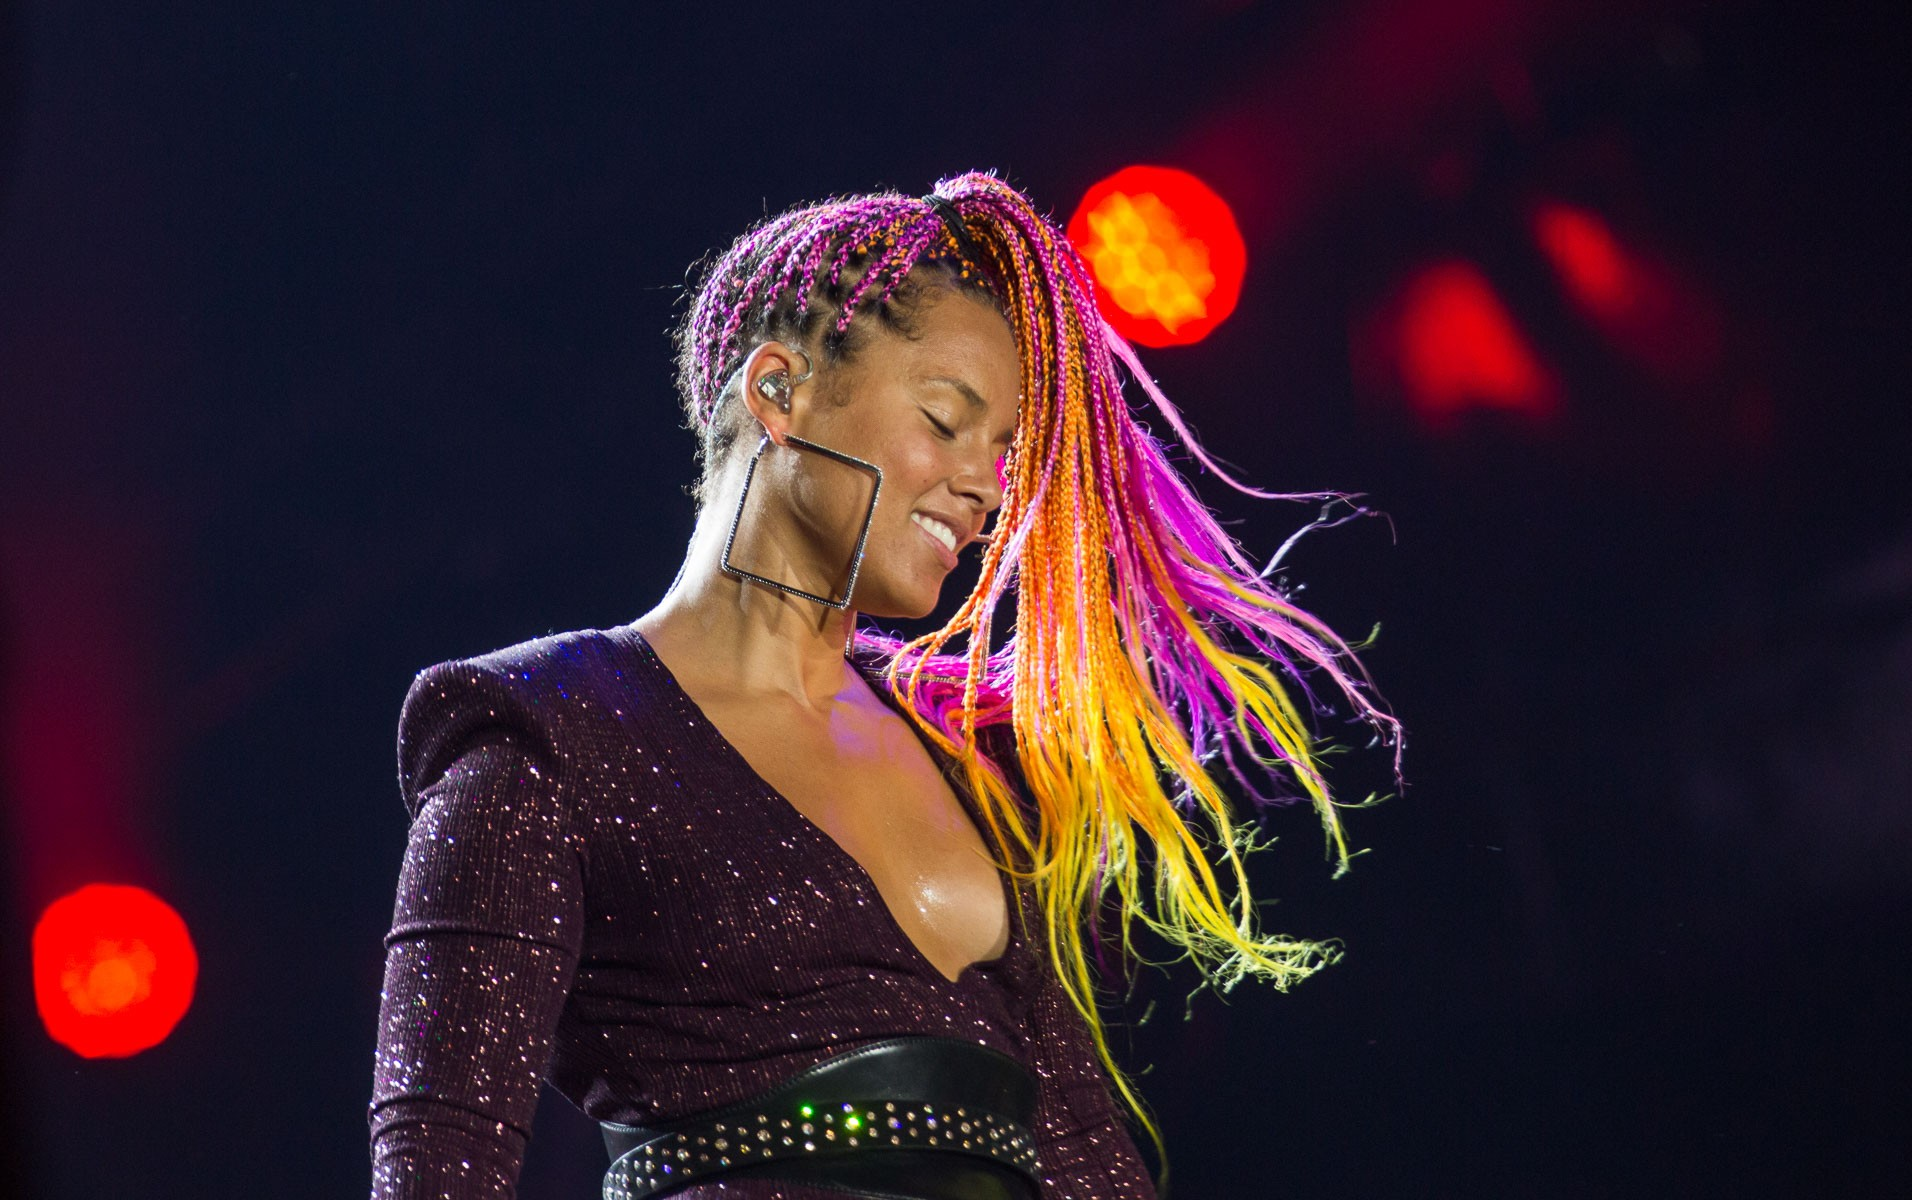 17-09 - MUNDO - Alicia Keys - Rock in Rio 2017 (Foto: Andr Bittencourt)